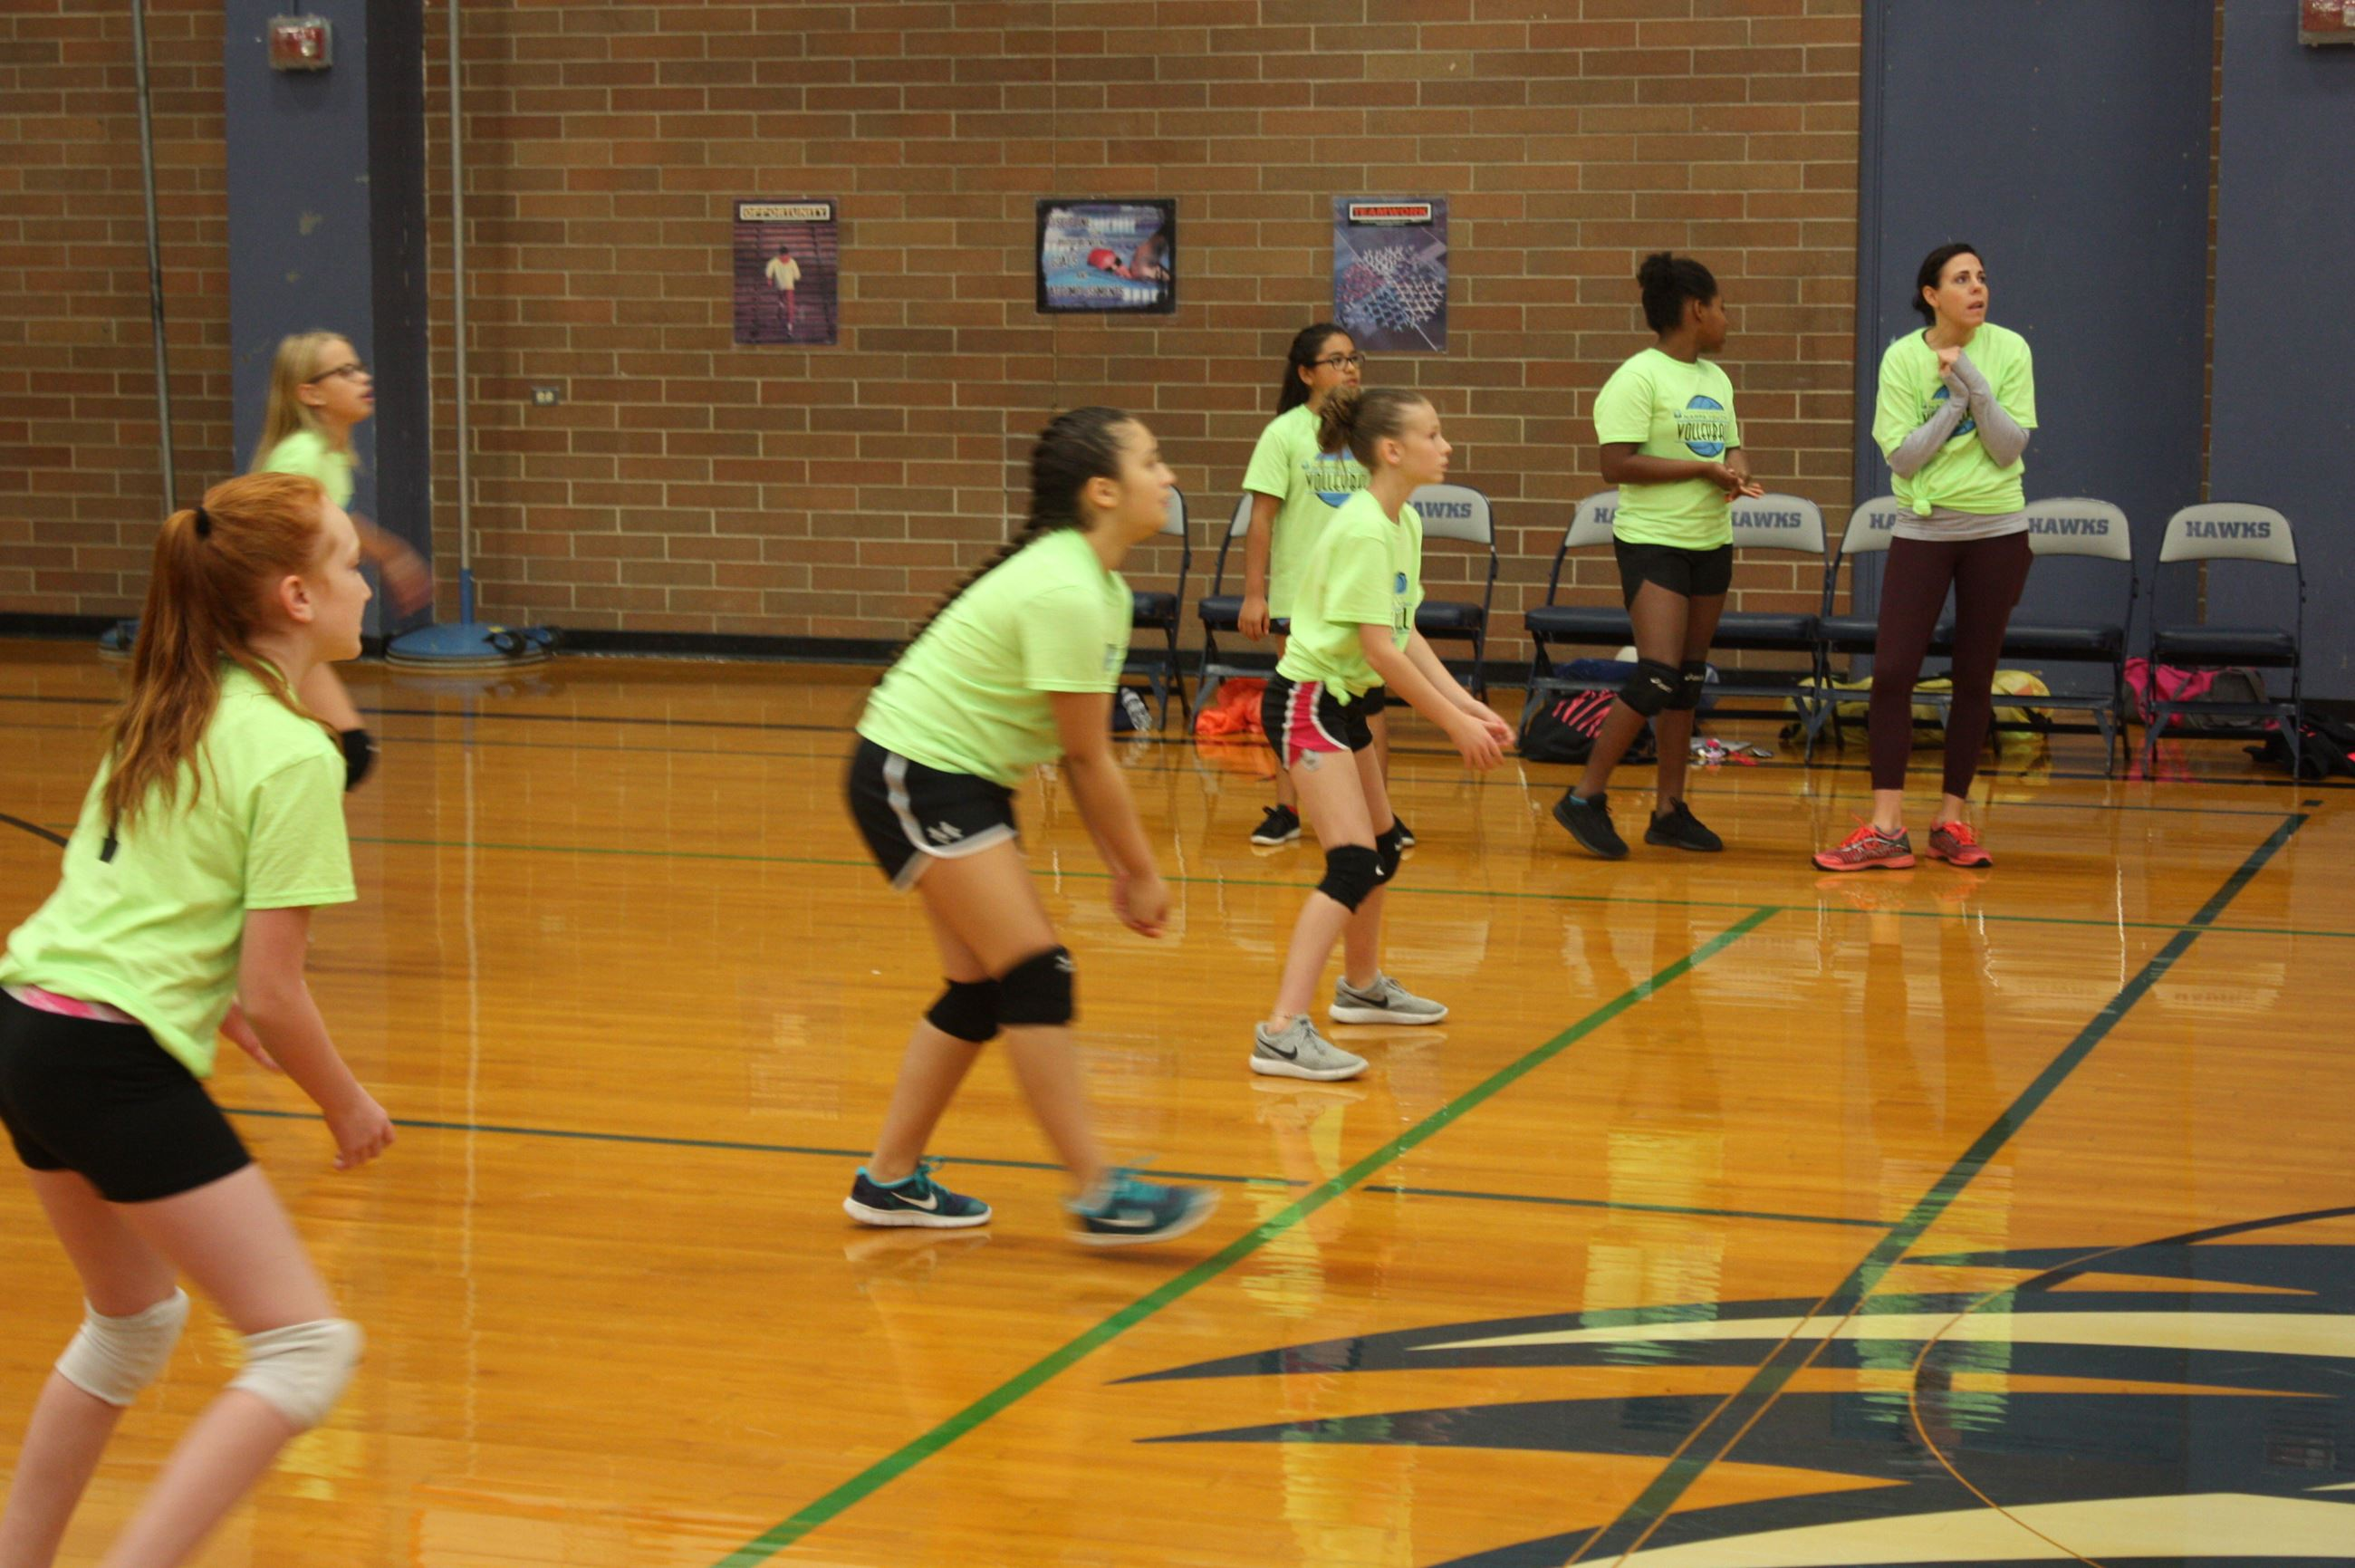 Girls on volleyball court during Nampa Youth Volleyball